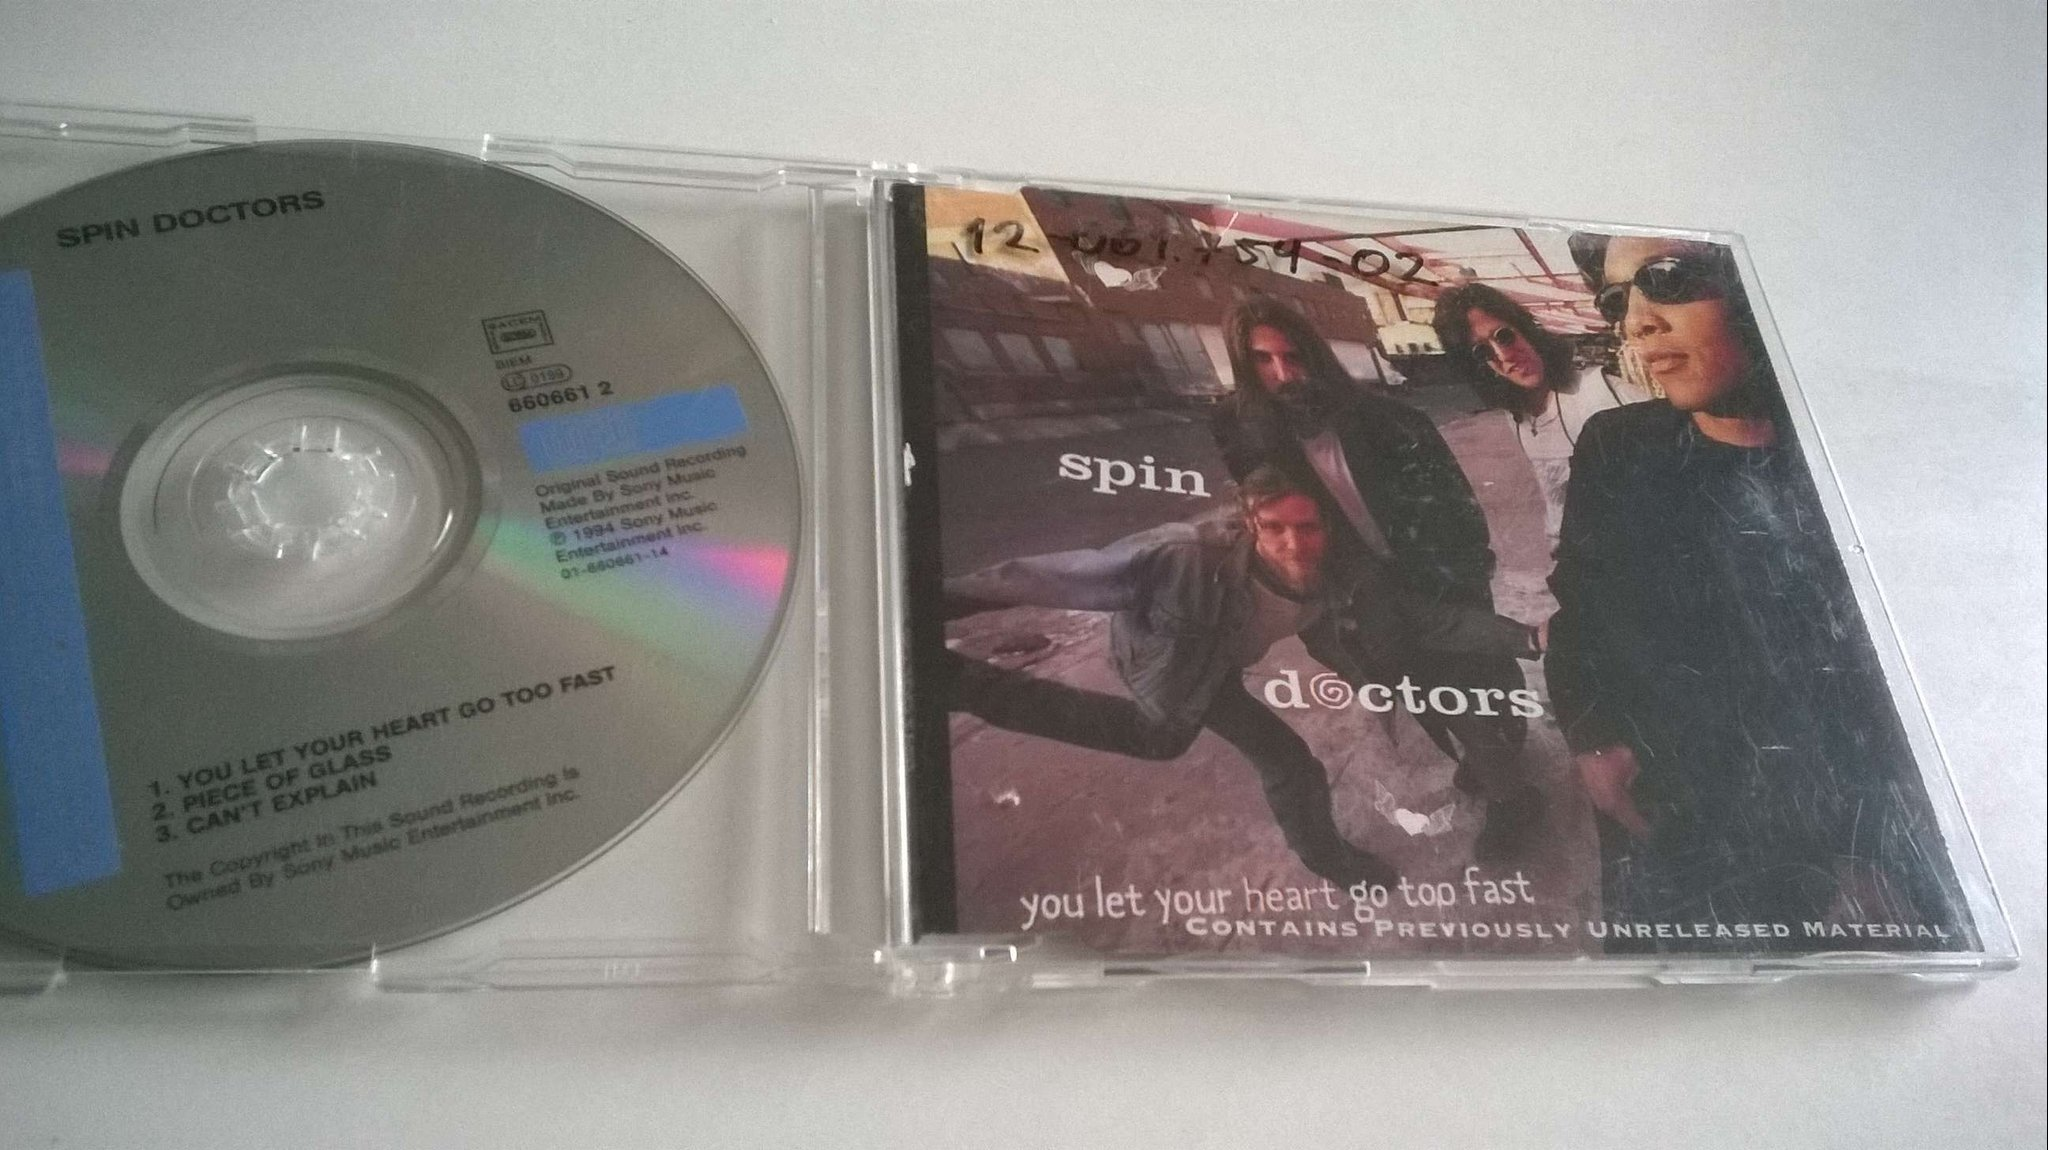 Spin Doctors - You Let Your Heart Go Too Fast, CD, Single